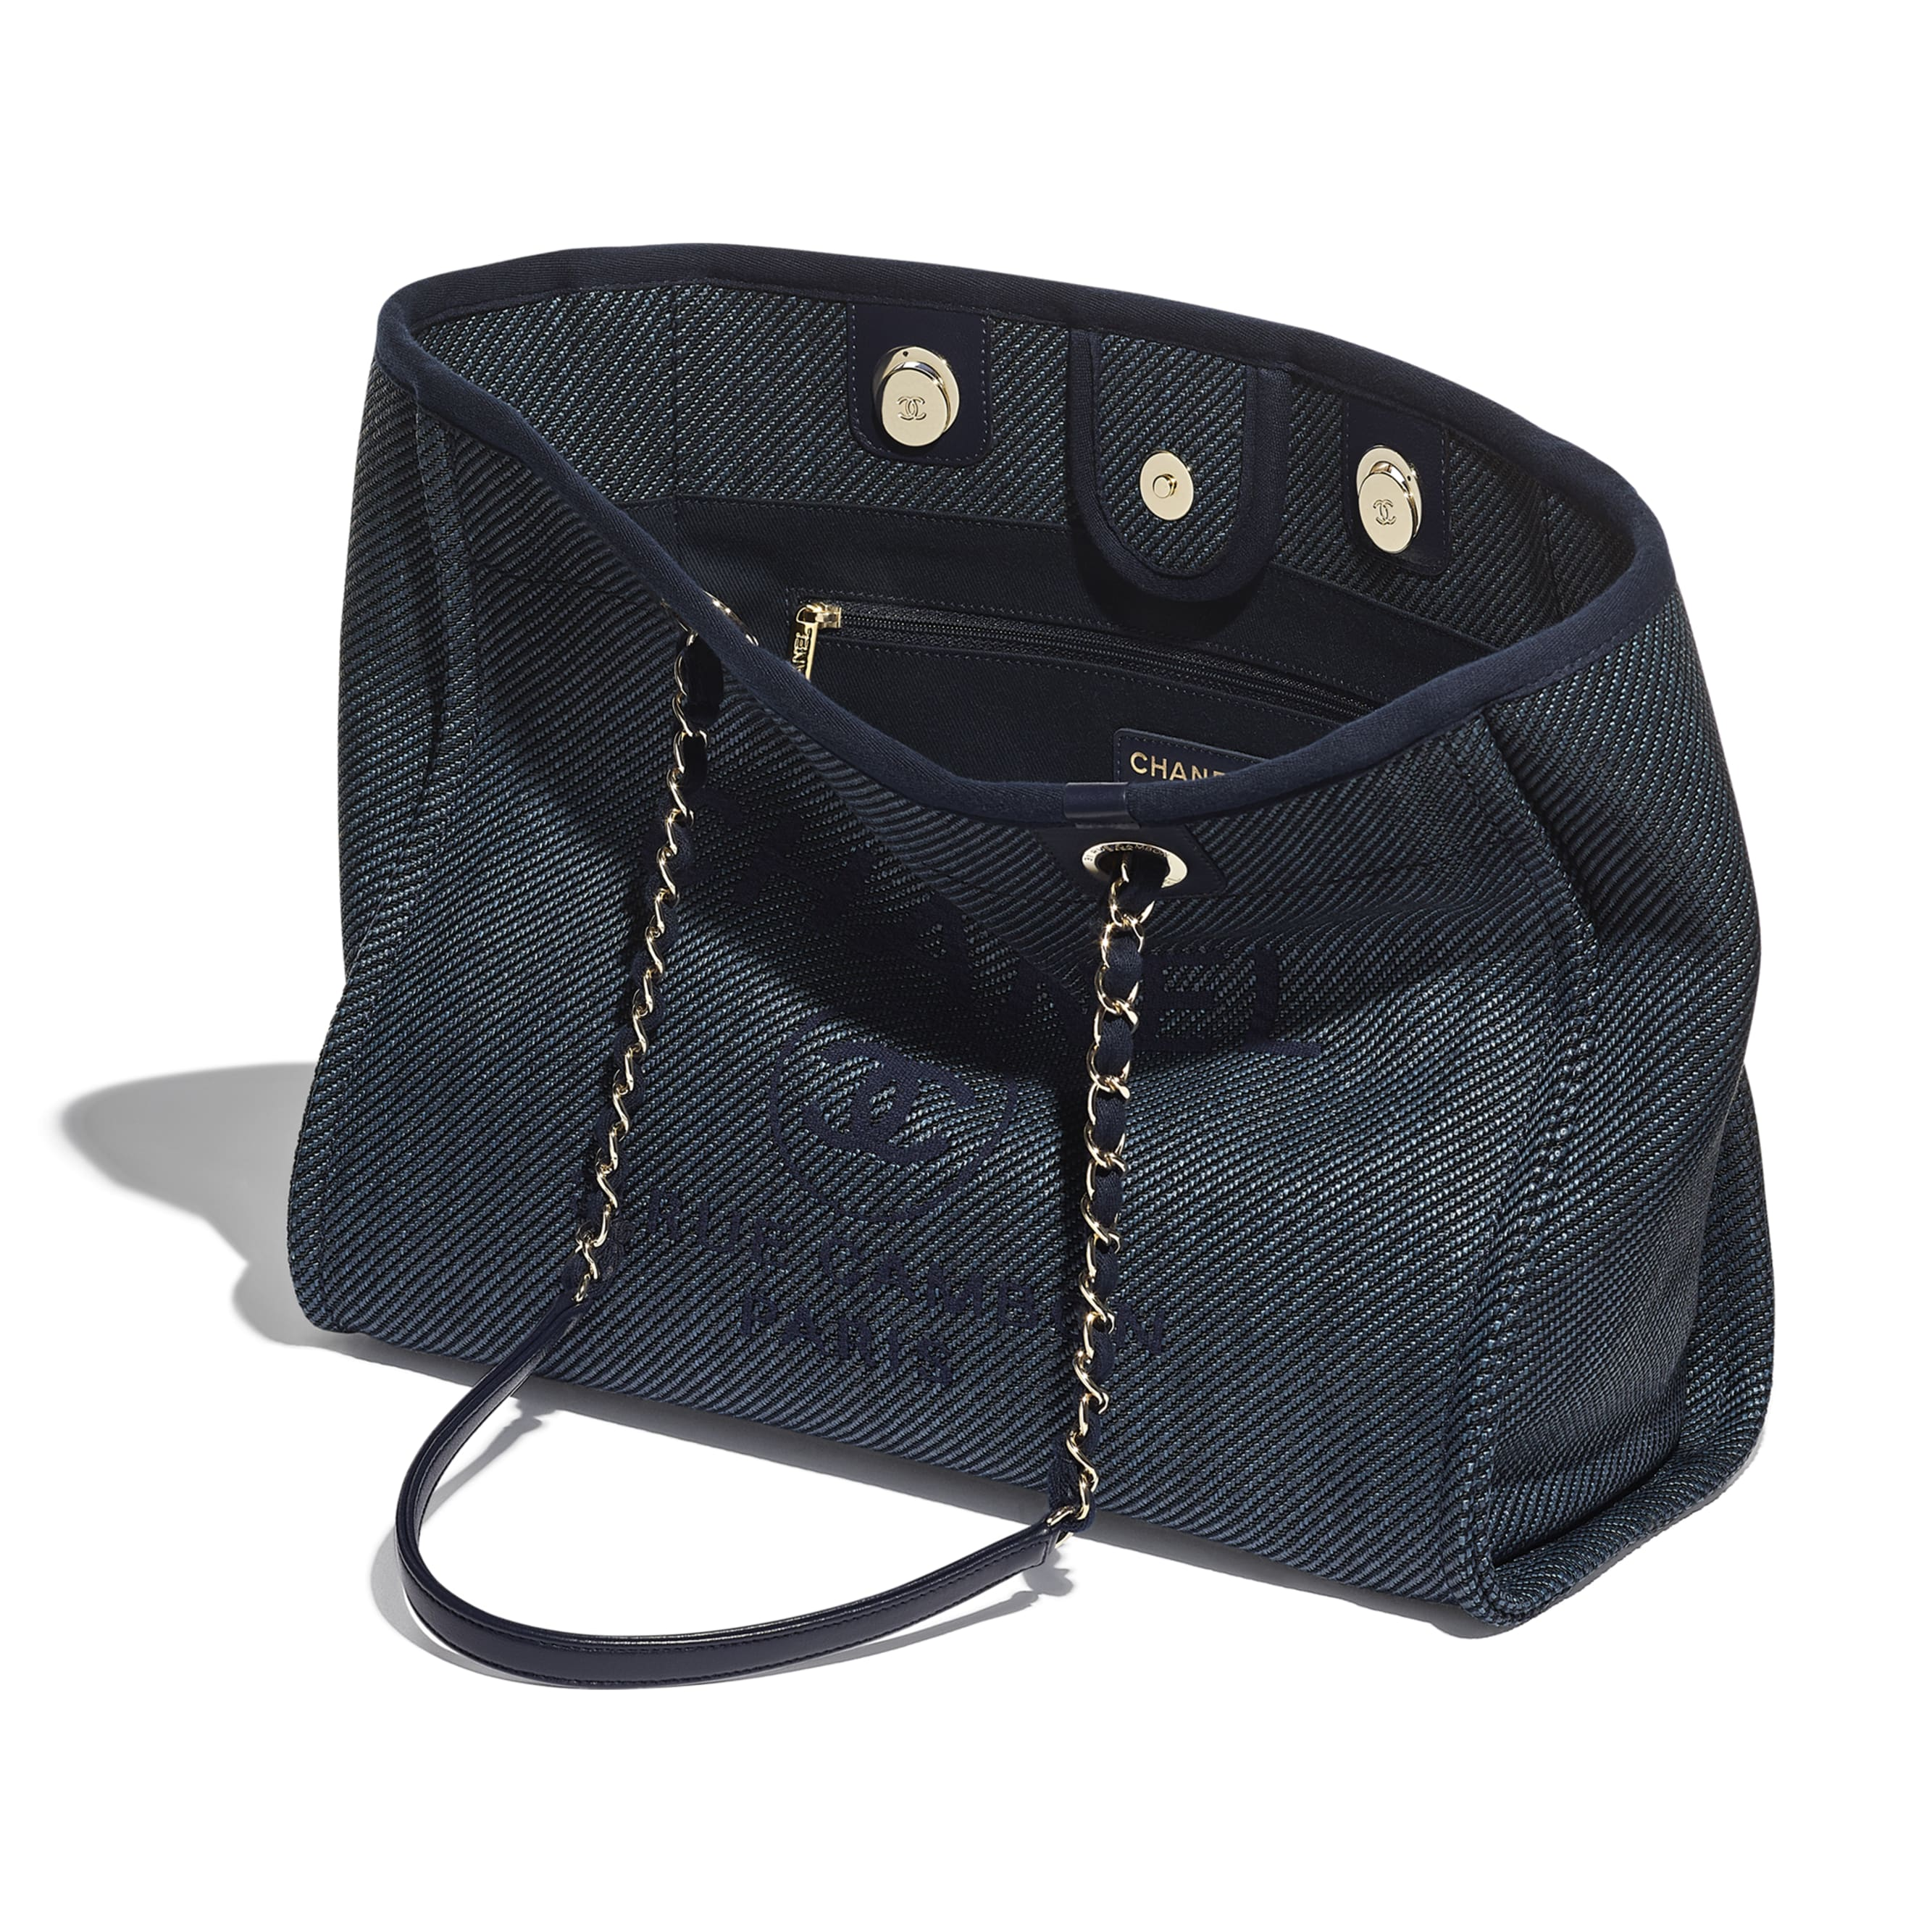 Large Tote - Navy Blue - Mixed Fibres, Calfskin & Gold-Tone Metal - CHANEL - Other view - see standard sized version